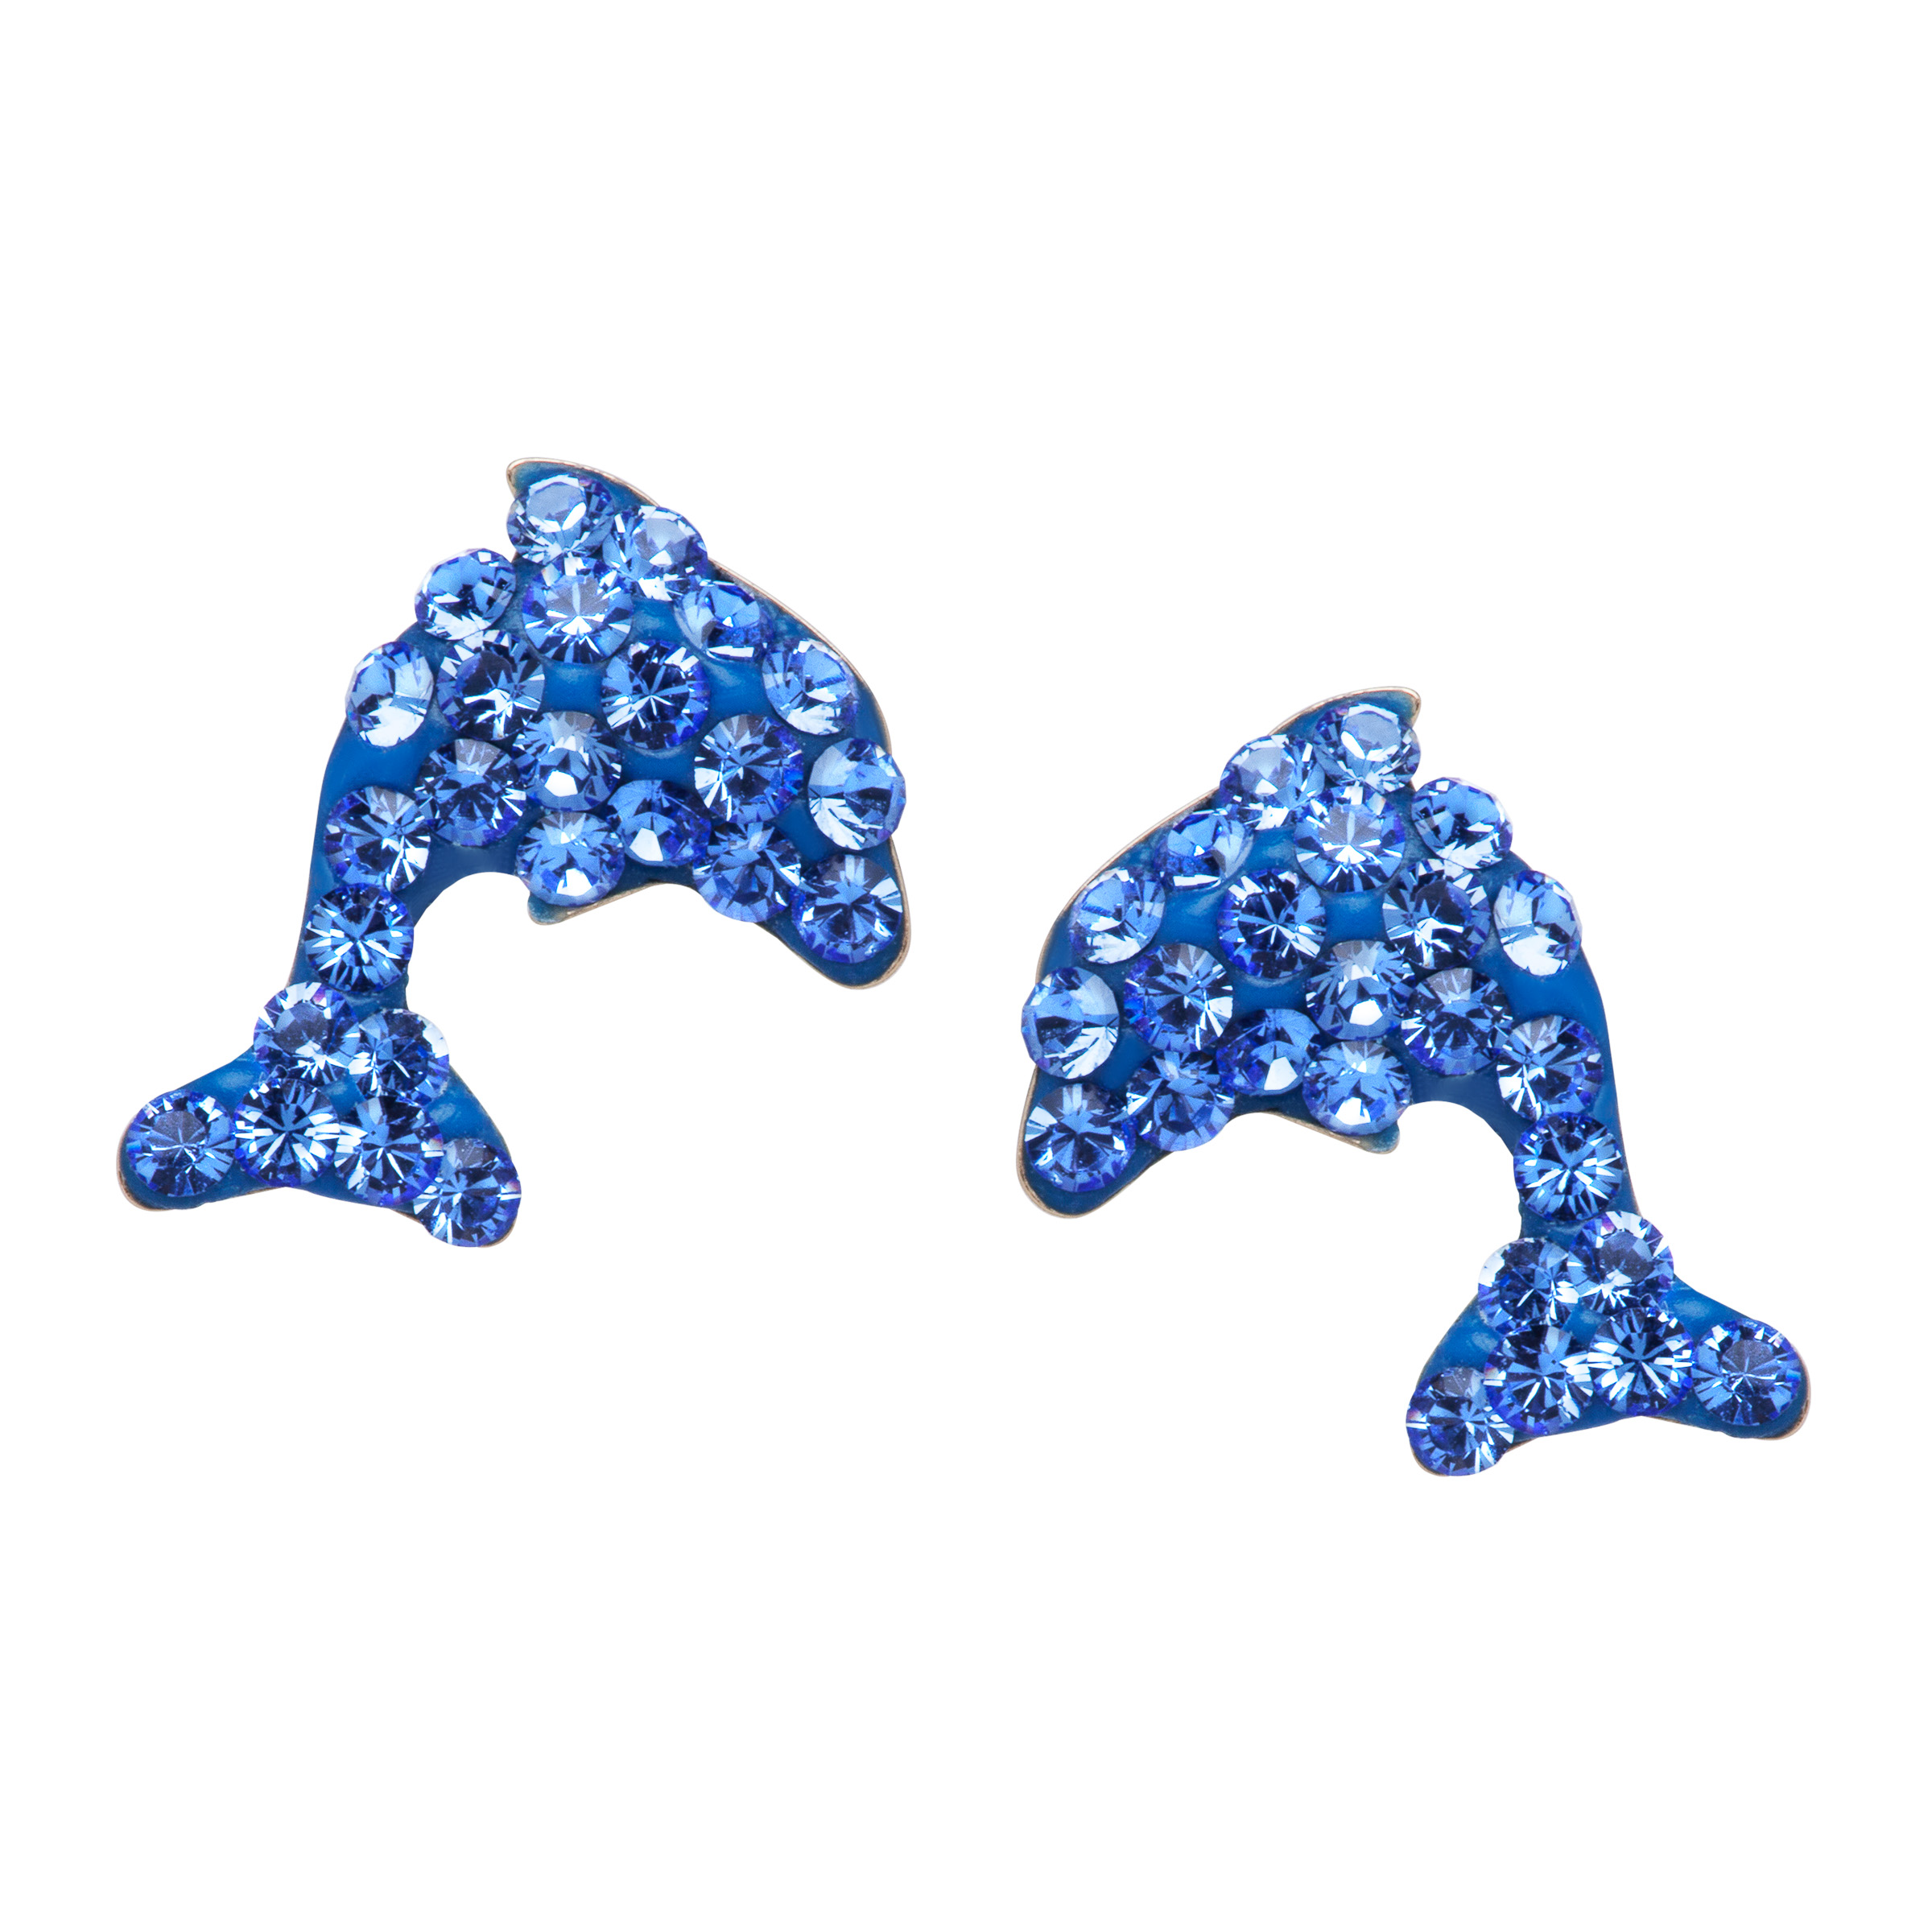 Crystaluxe Dolphin Stud Earrings with Blue Swarovski Crystals in 10kt Gold